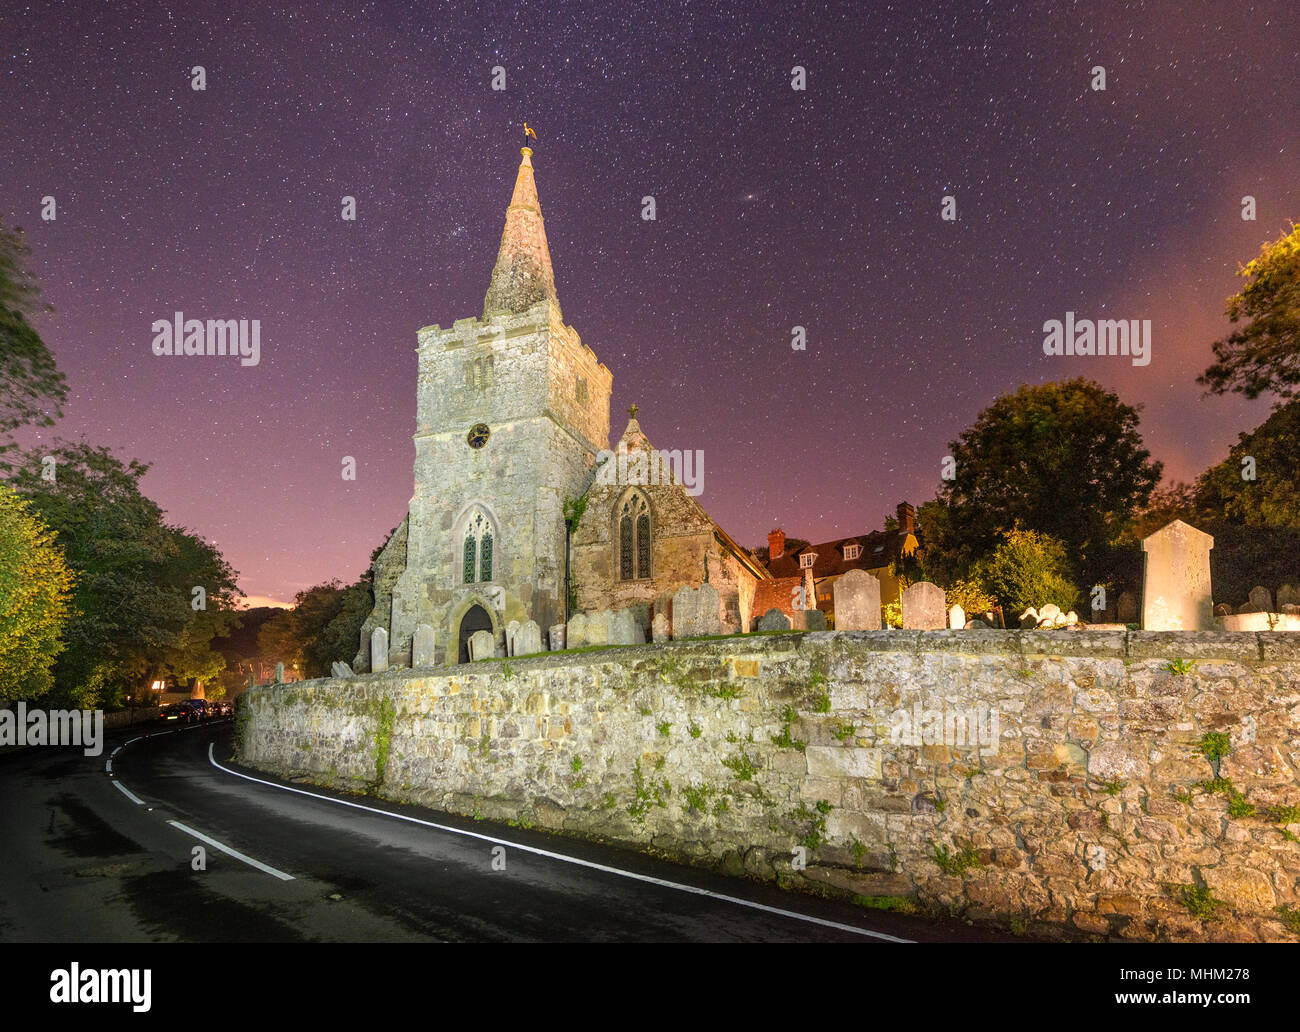 Village Church of St Peter at Shorwell under the stars at night - Stock Image